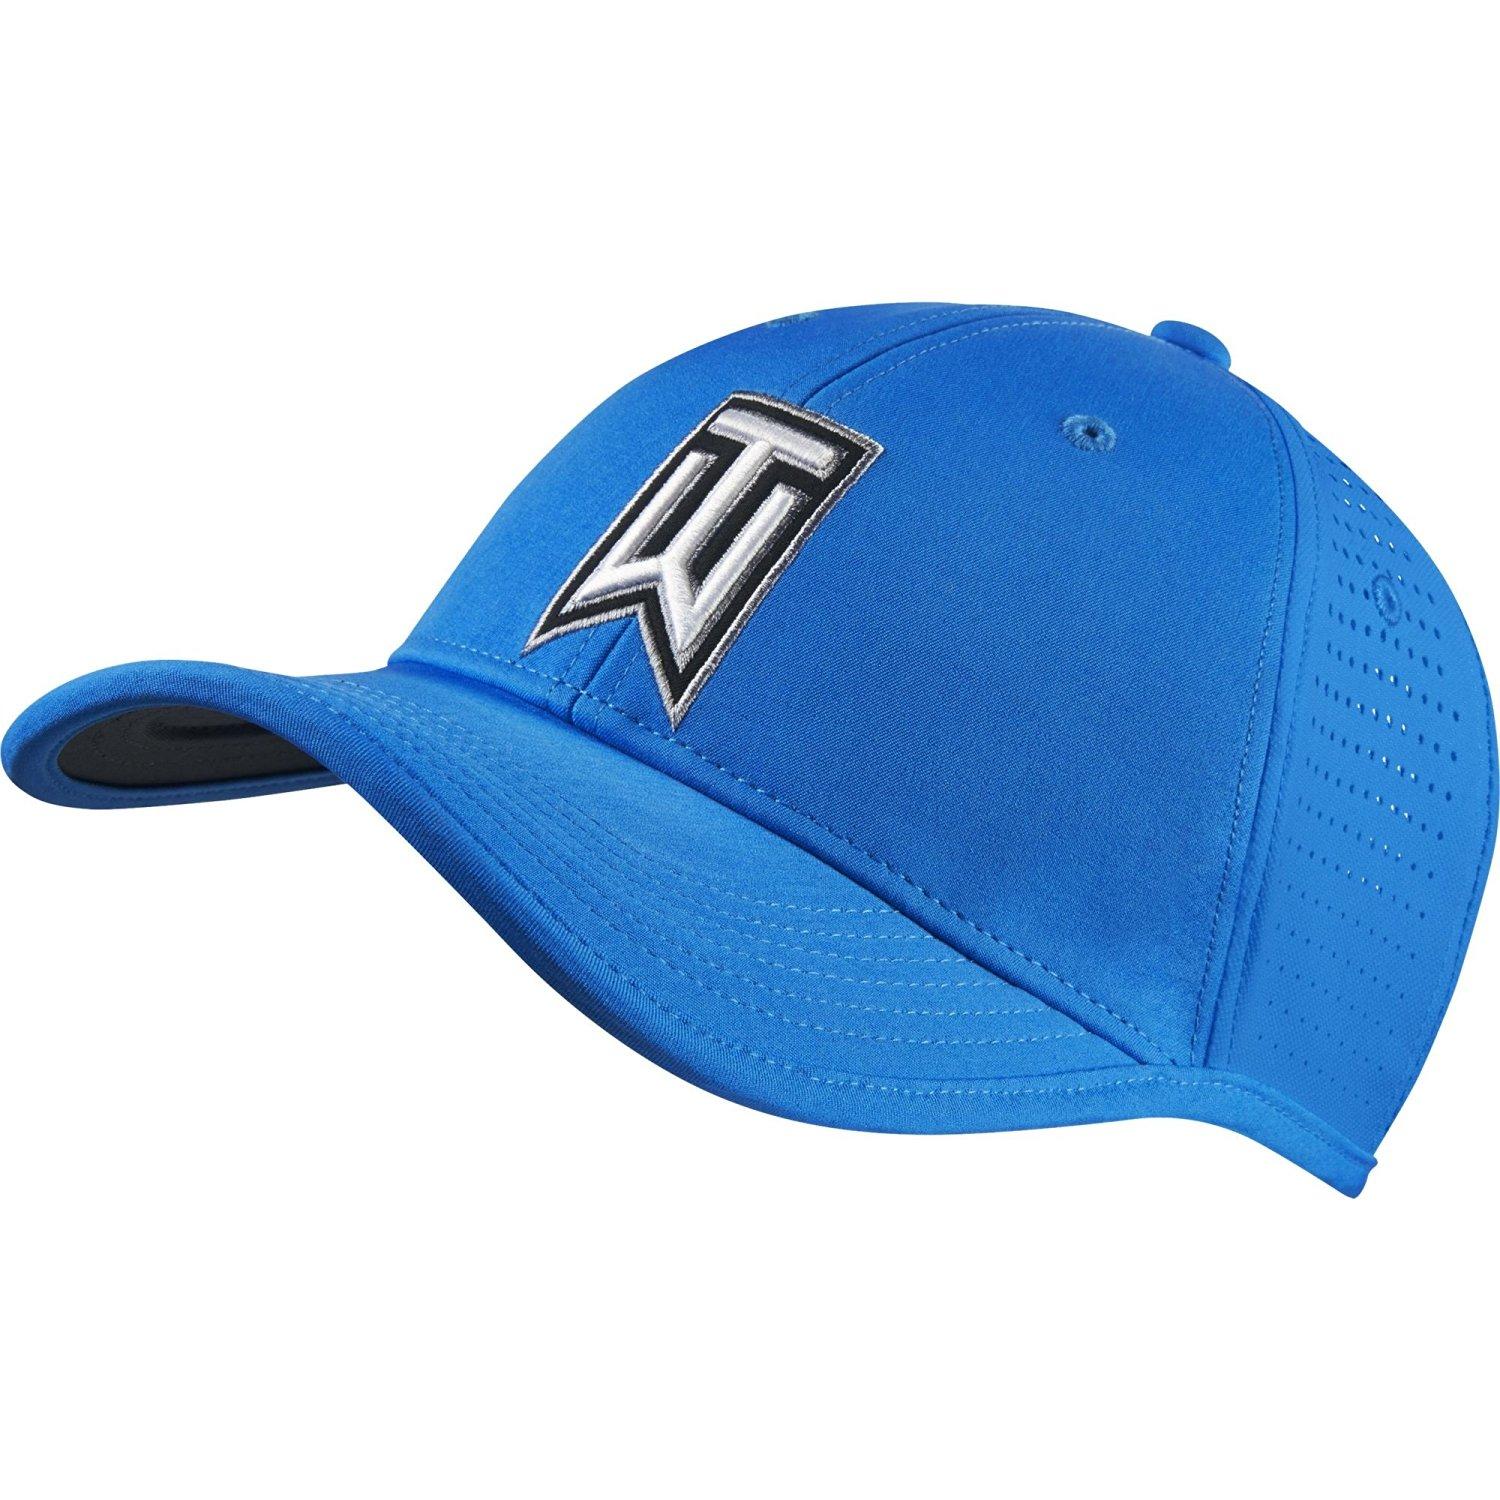 821def9d85d Get Quotations · Nike Golf CLOSEOUT TW Ultralight Tour Adjustable Hat-  Assorted Colors 726291 (Photo Blue